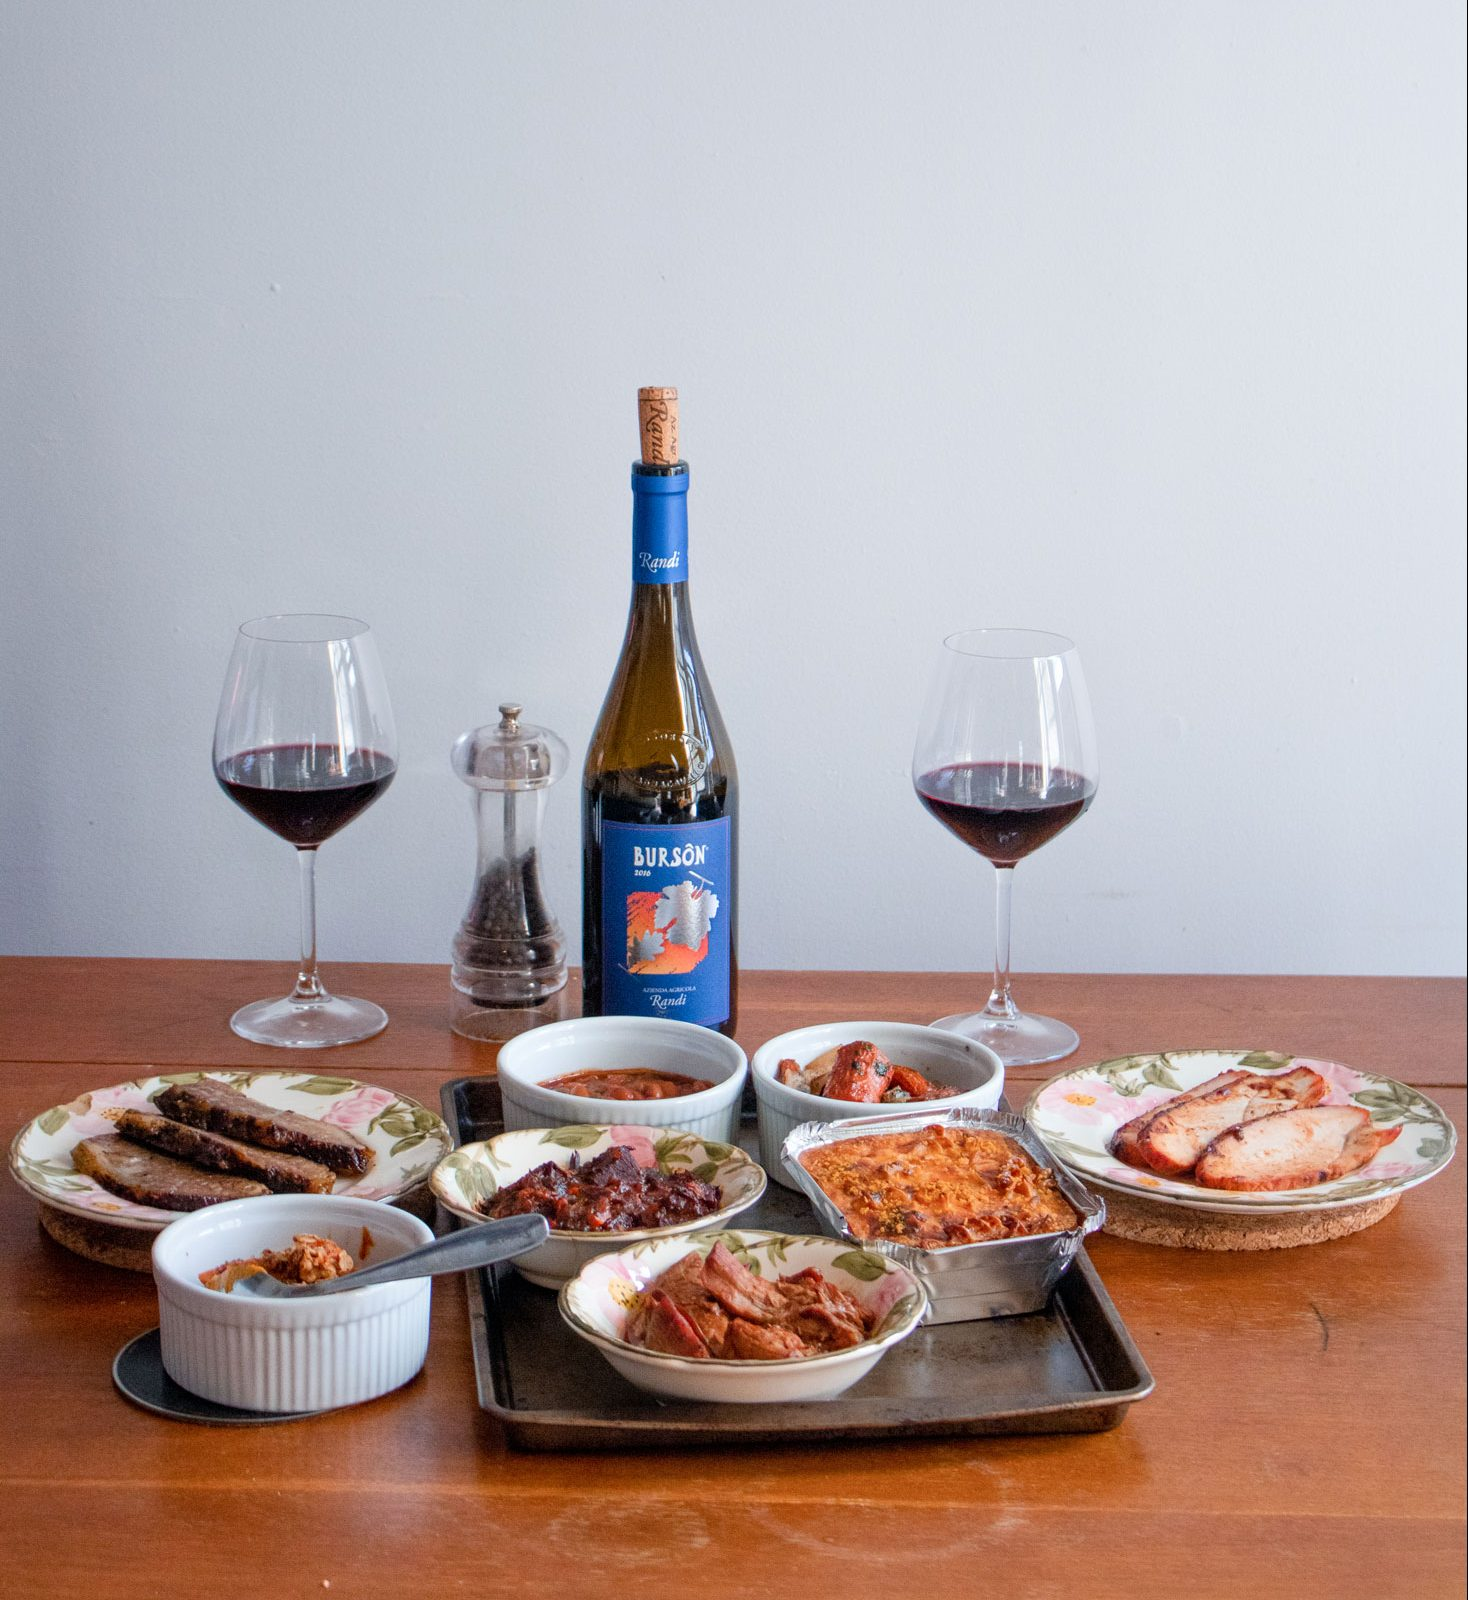 A table with an open bottle, two filled wine glasses and other dishes.